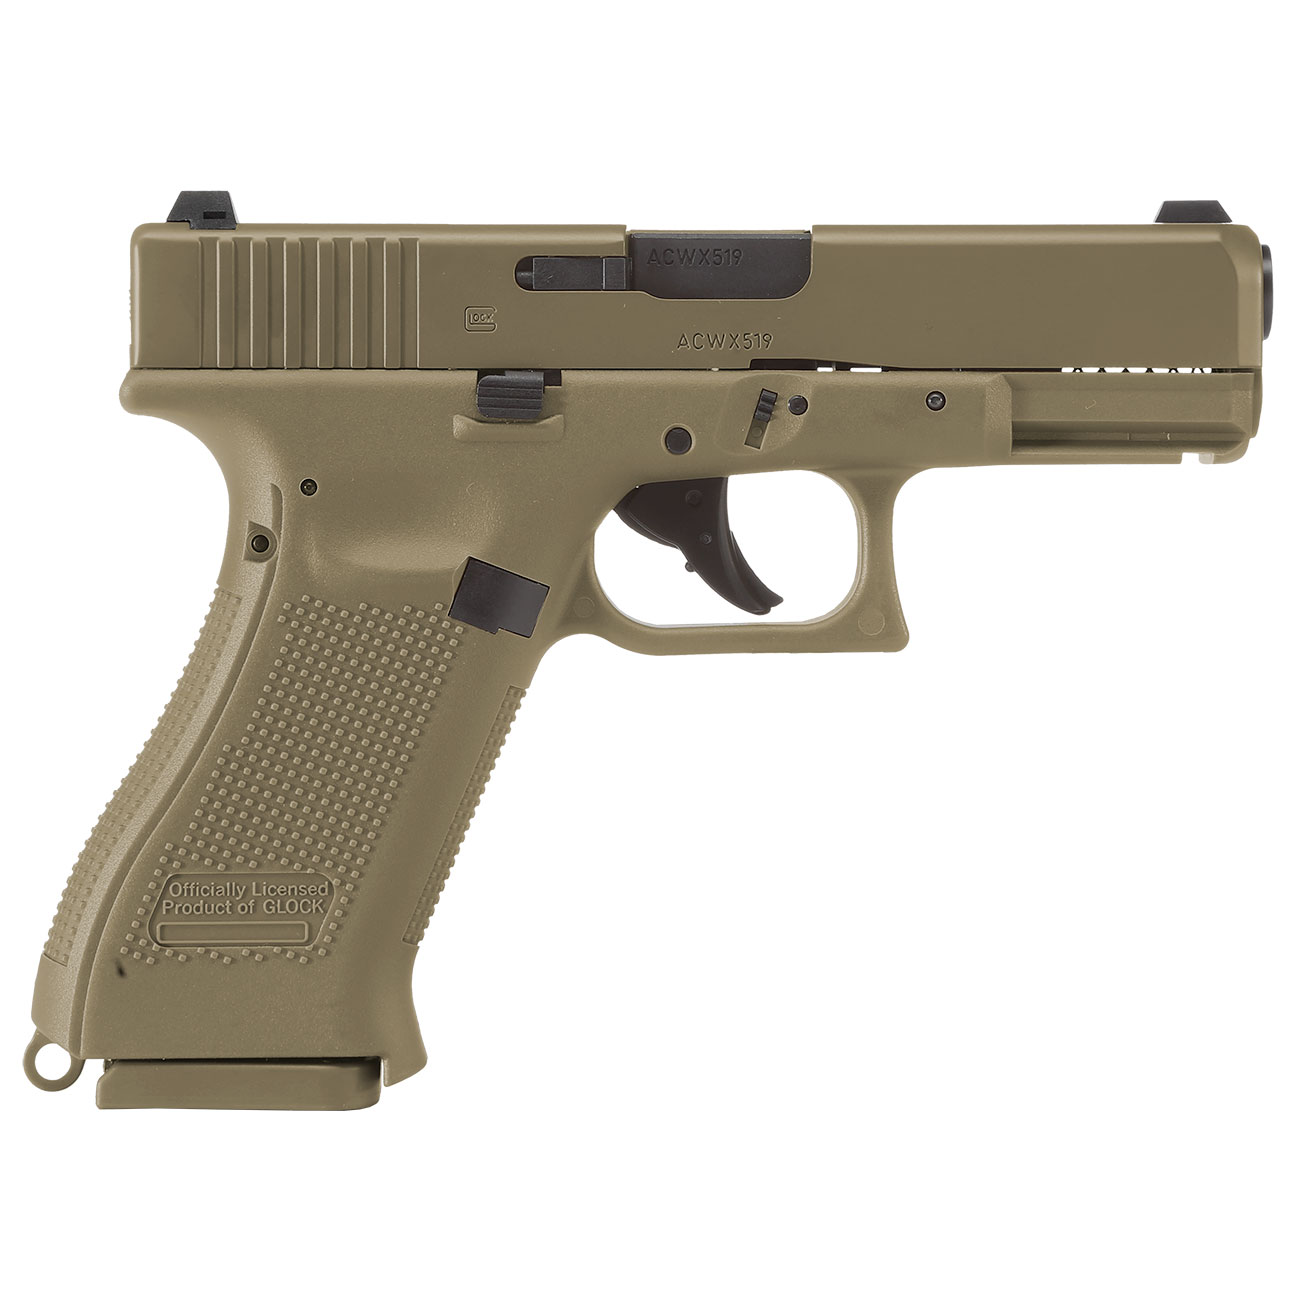 Glock 19X CO2-Luftpistole Kal. 4,5mm Stahl-BB coyote tan Blowback 4